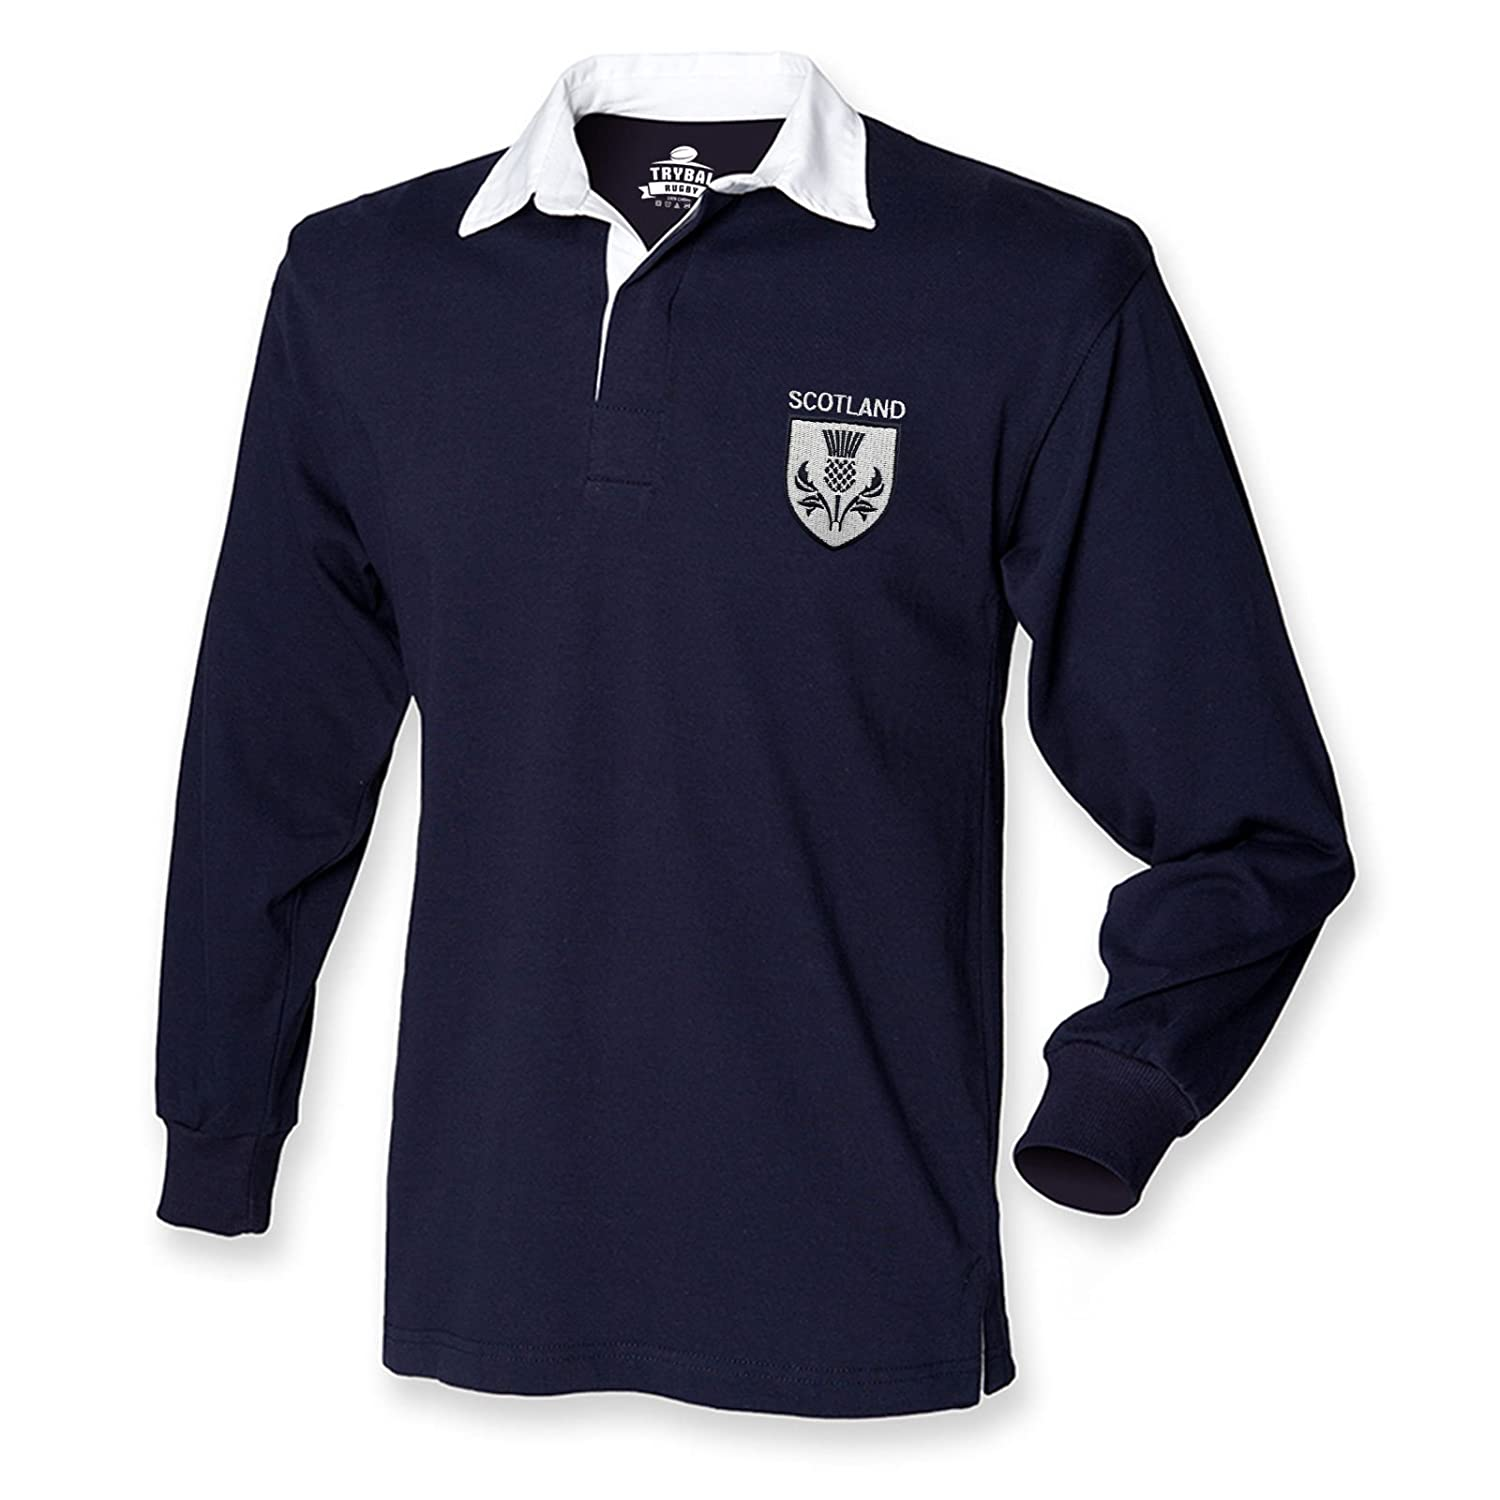 f156248ac Scotland Rugby Shirt - Mens Navy Long Sleeve Top - Embroidered Scottish  Thistle Badge: Amazon.co.uk: Clothing